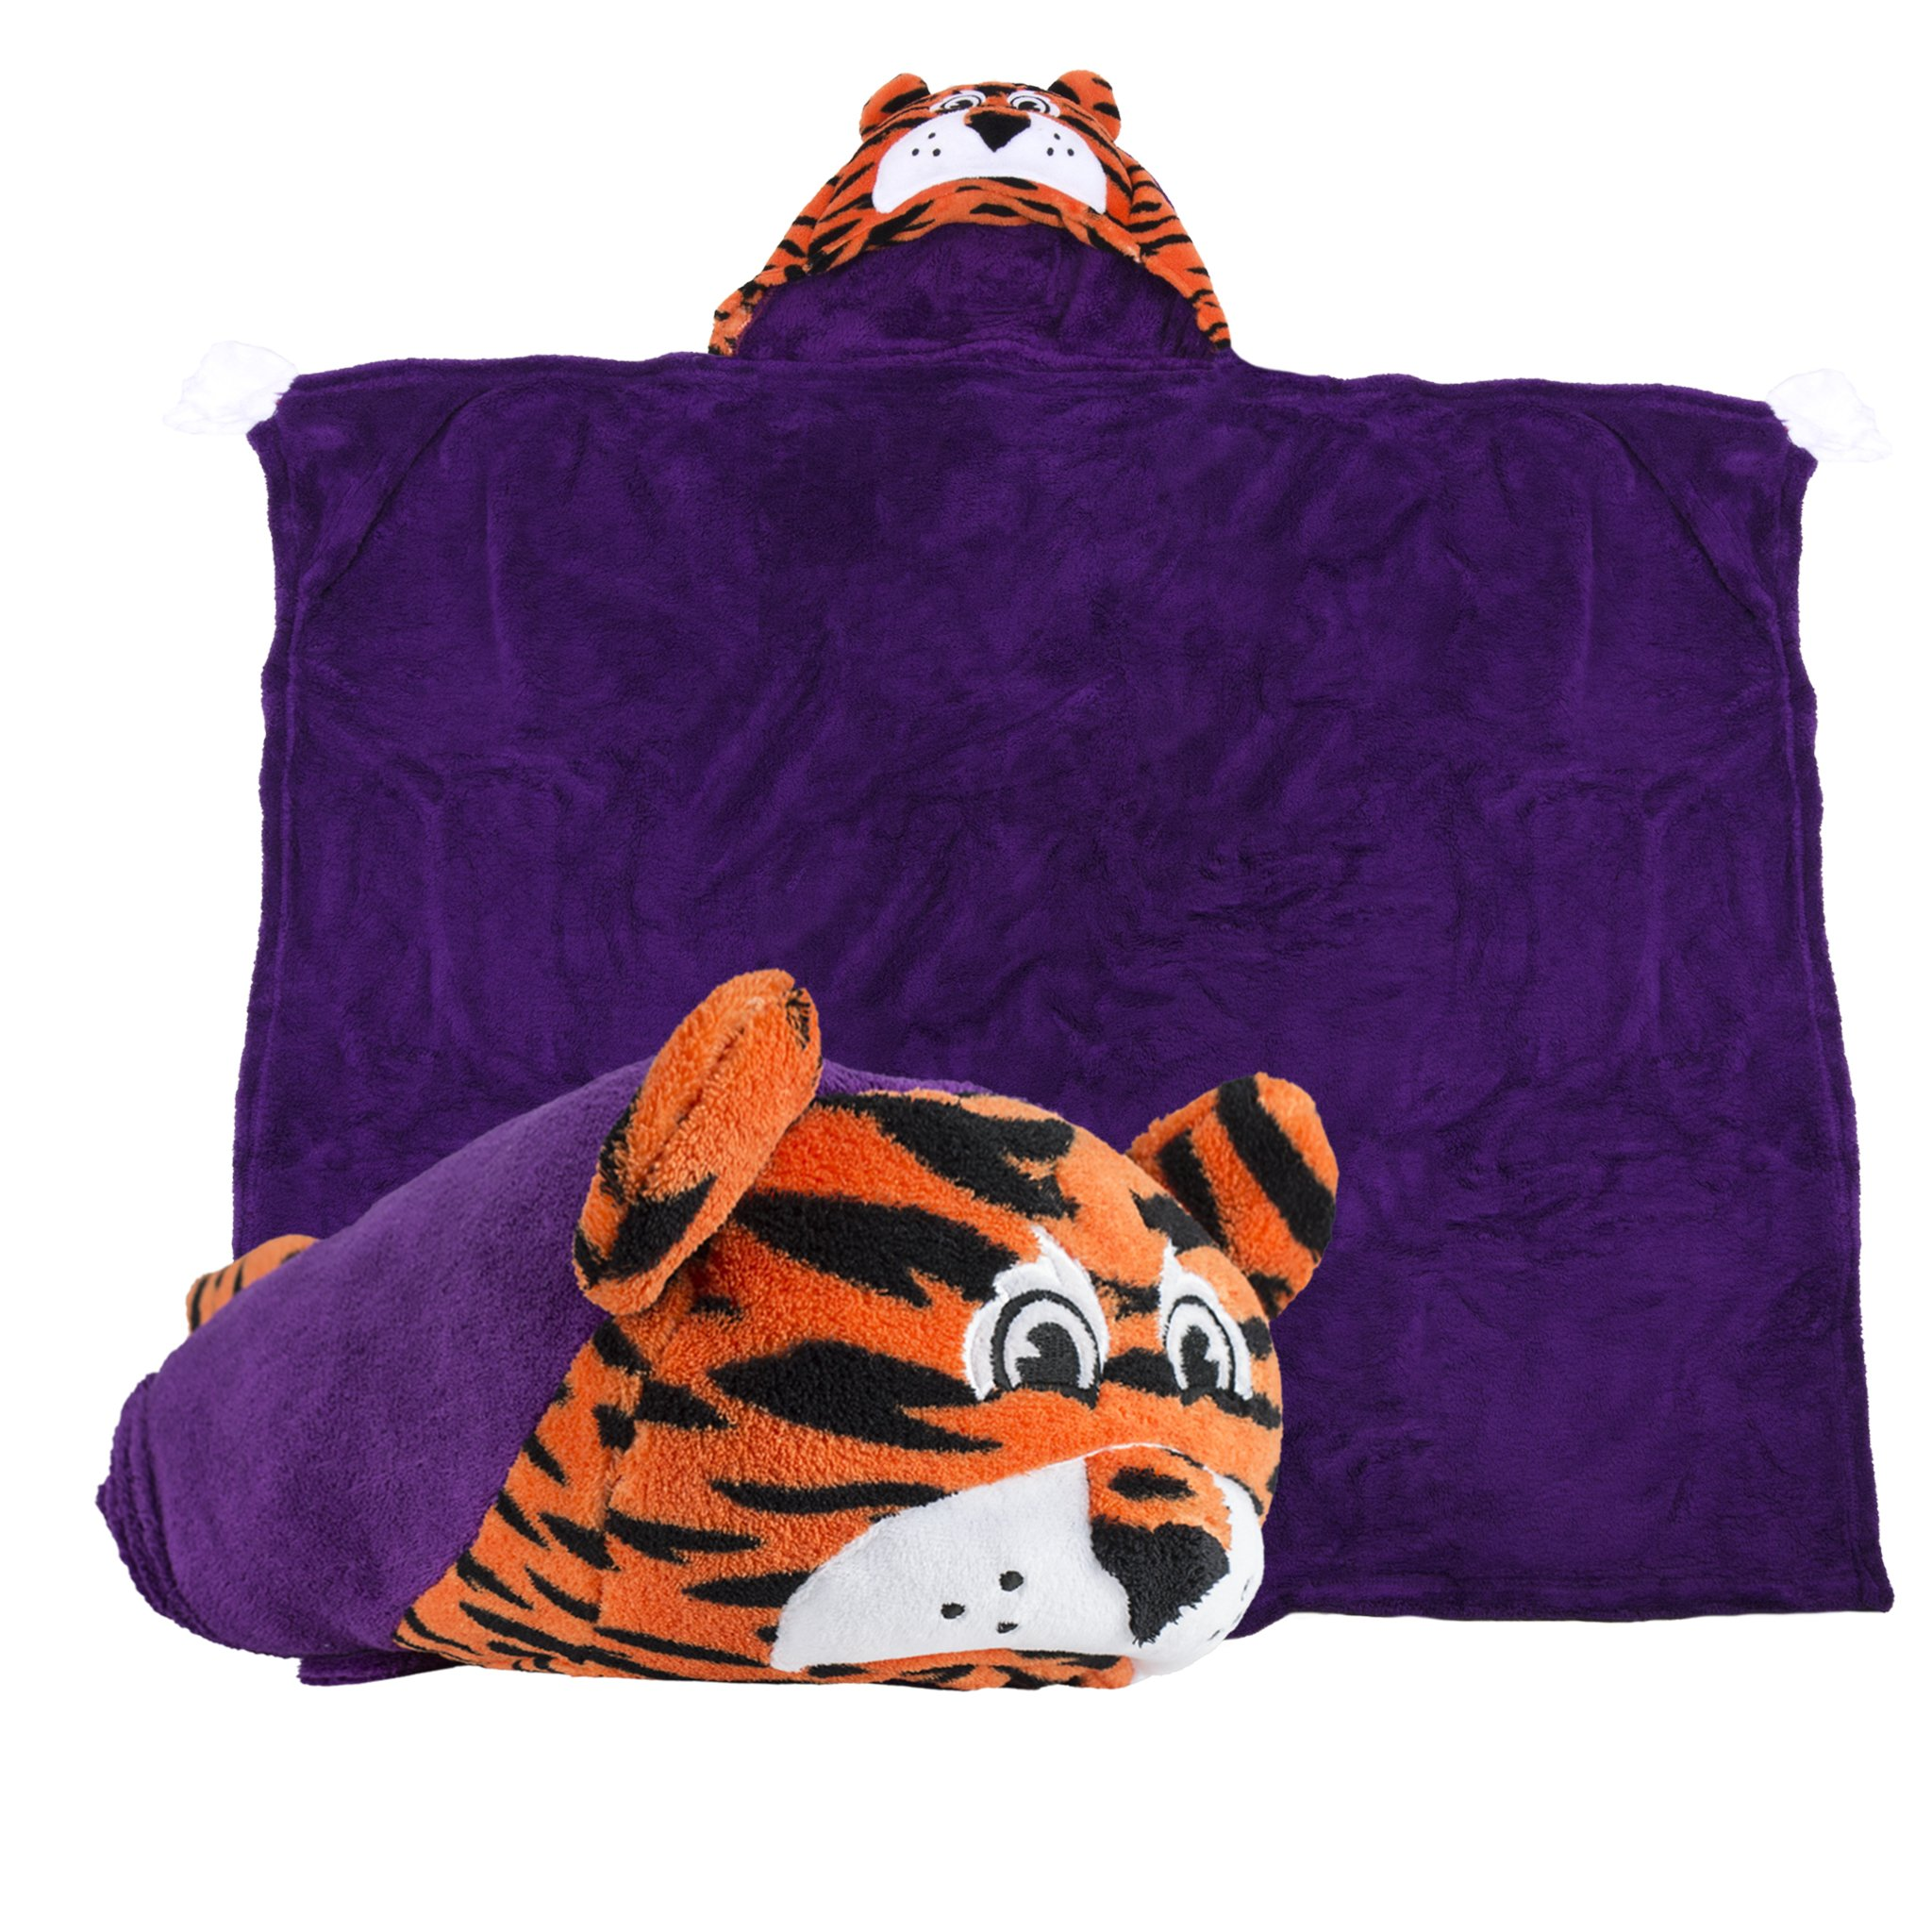 Comfy Critters Stuffed Animal Blanket – College Mascot, Clemson University 'Tiger' – Kids huggable pillow and blanket perfect for the big game, tailgating, pretend play, travel, and much more. by Comfy Critters